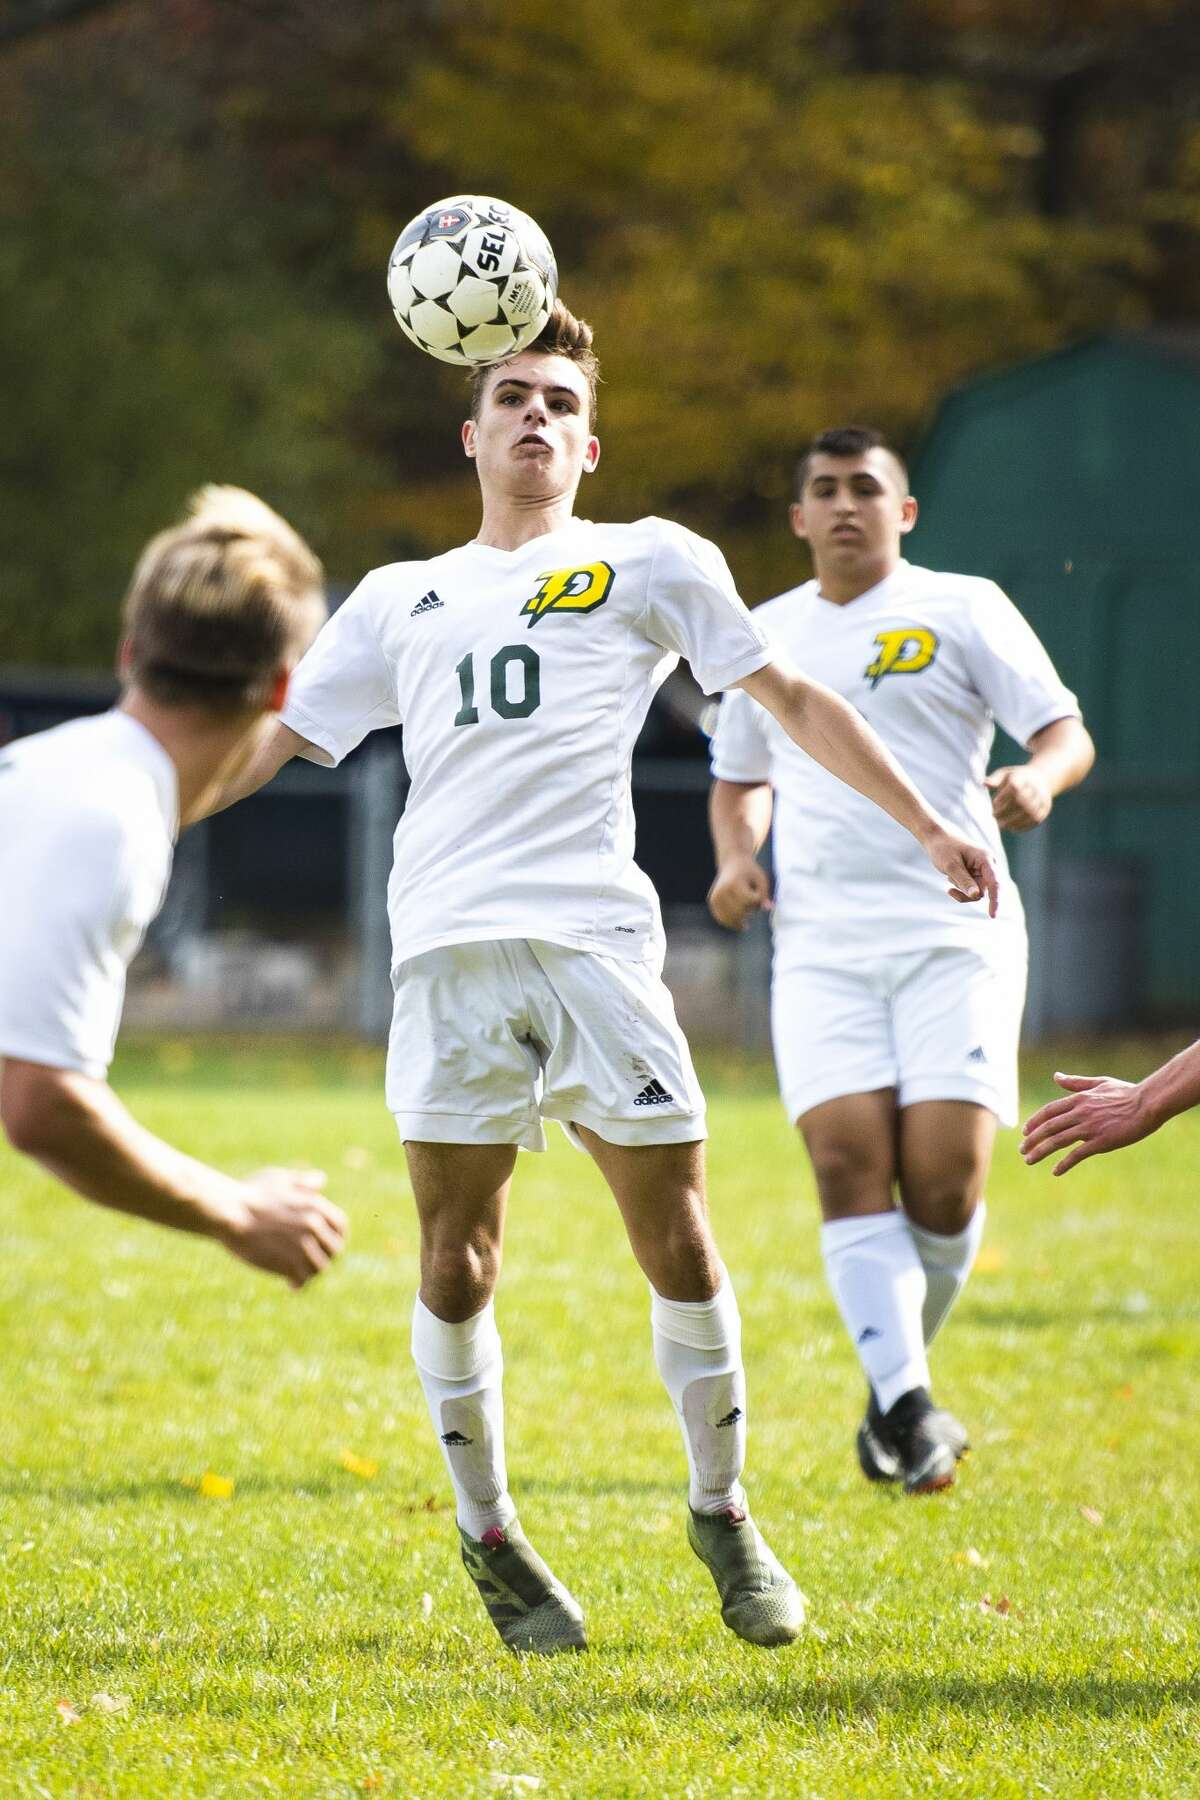 Dow senior Cody Glazier chest-bumps the ball as teammate, junior Adam Elfawal, runs behind himduring the district championship at H.H. Dow High School in Midland on Saturday, Oct. 21, 2017. Dow beat Traverse City Central 1-0. (Danielle McGrew Tenbusch/for the Daily News)